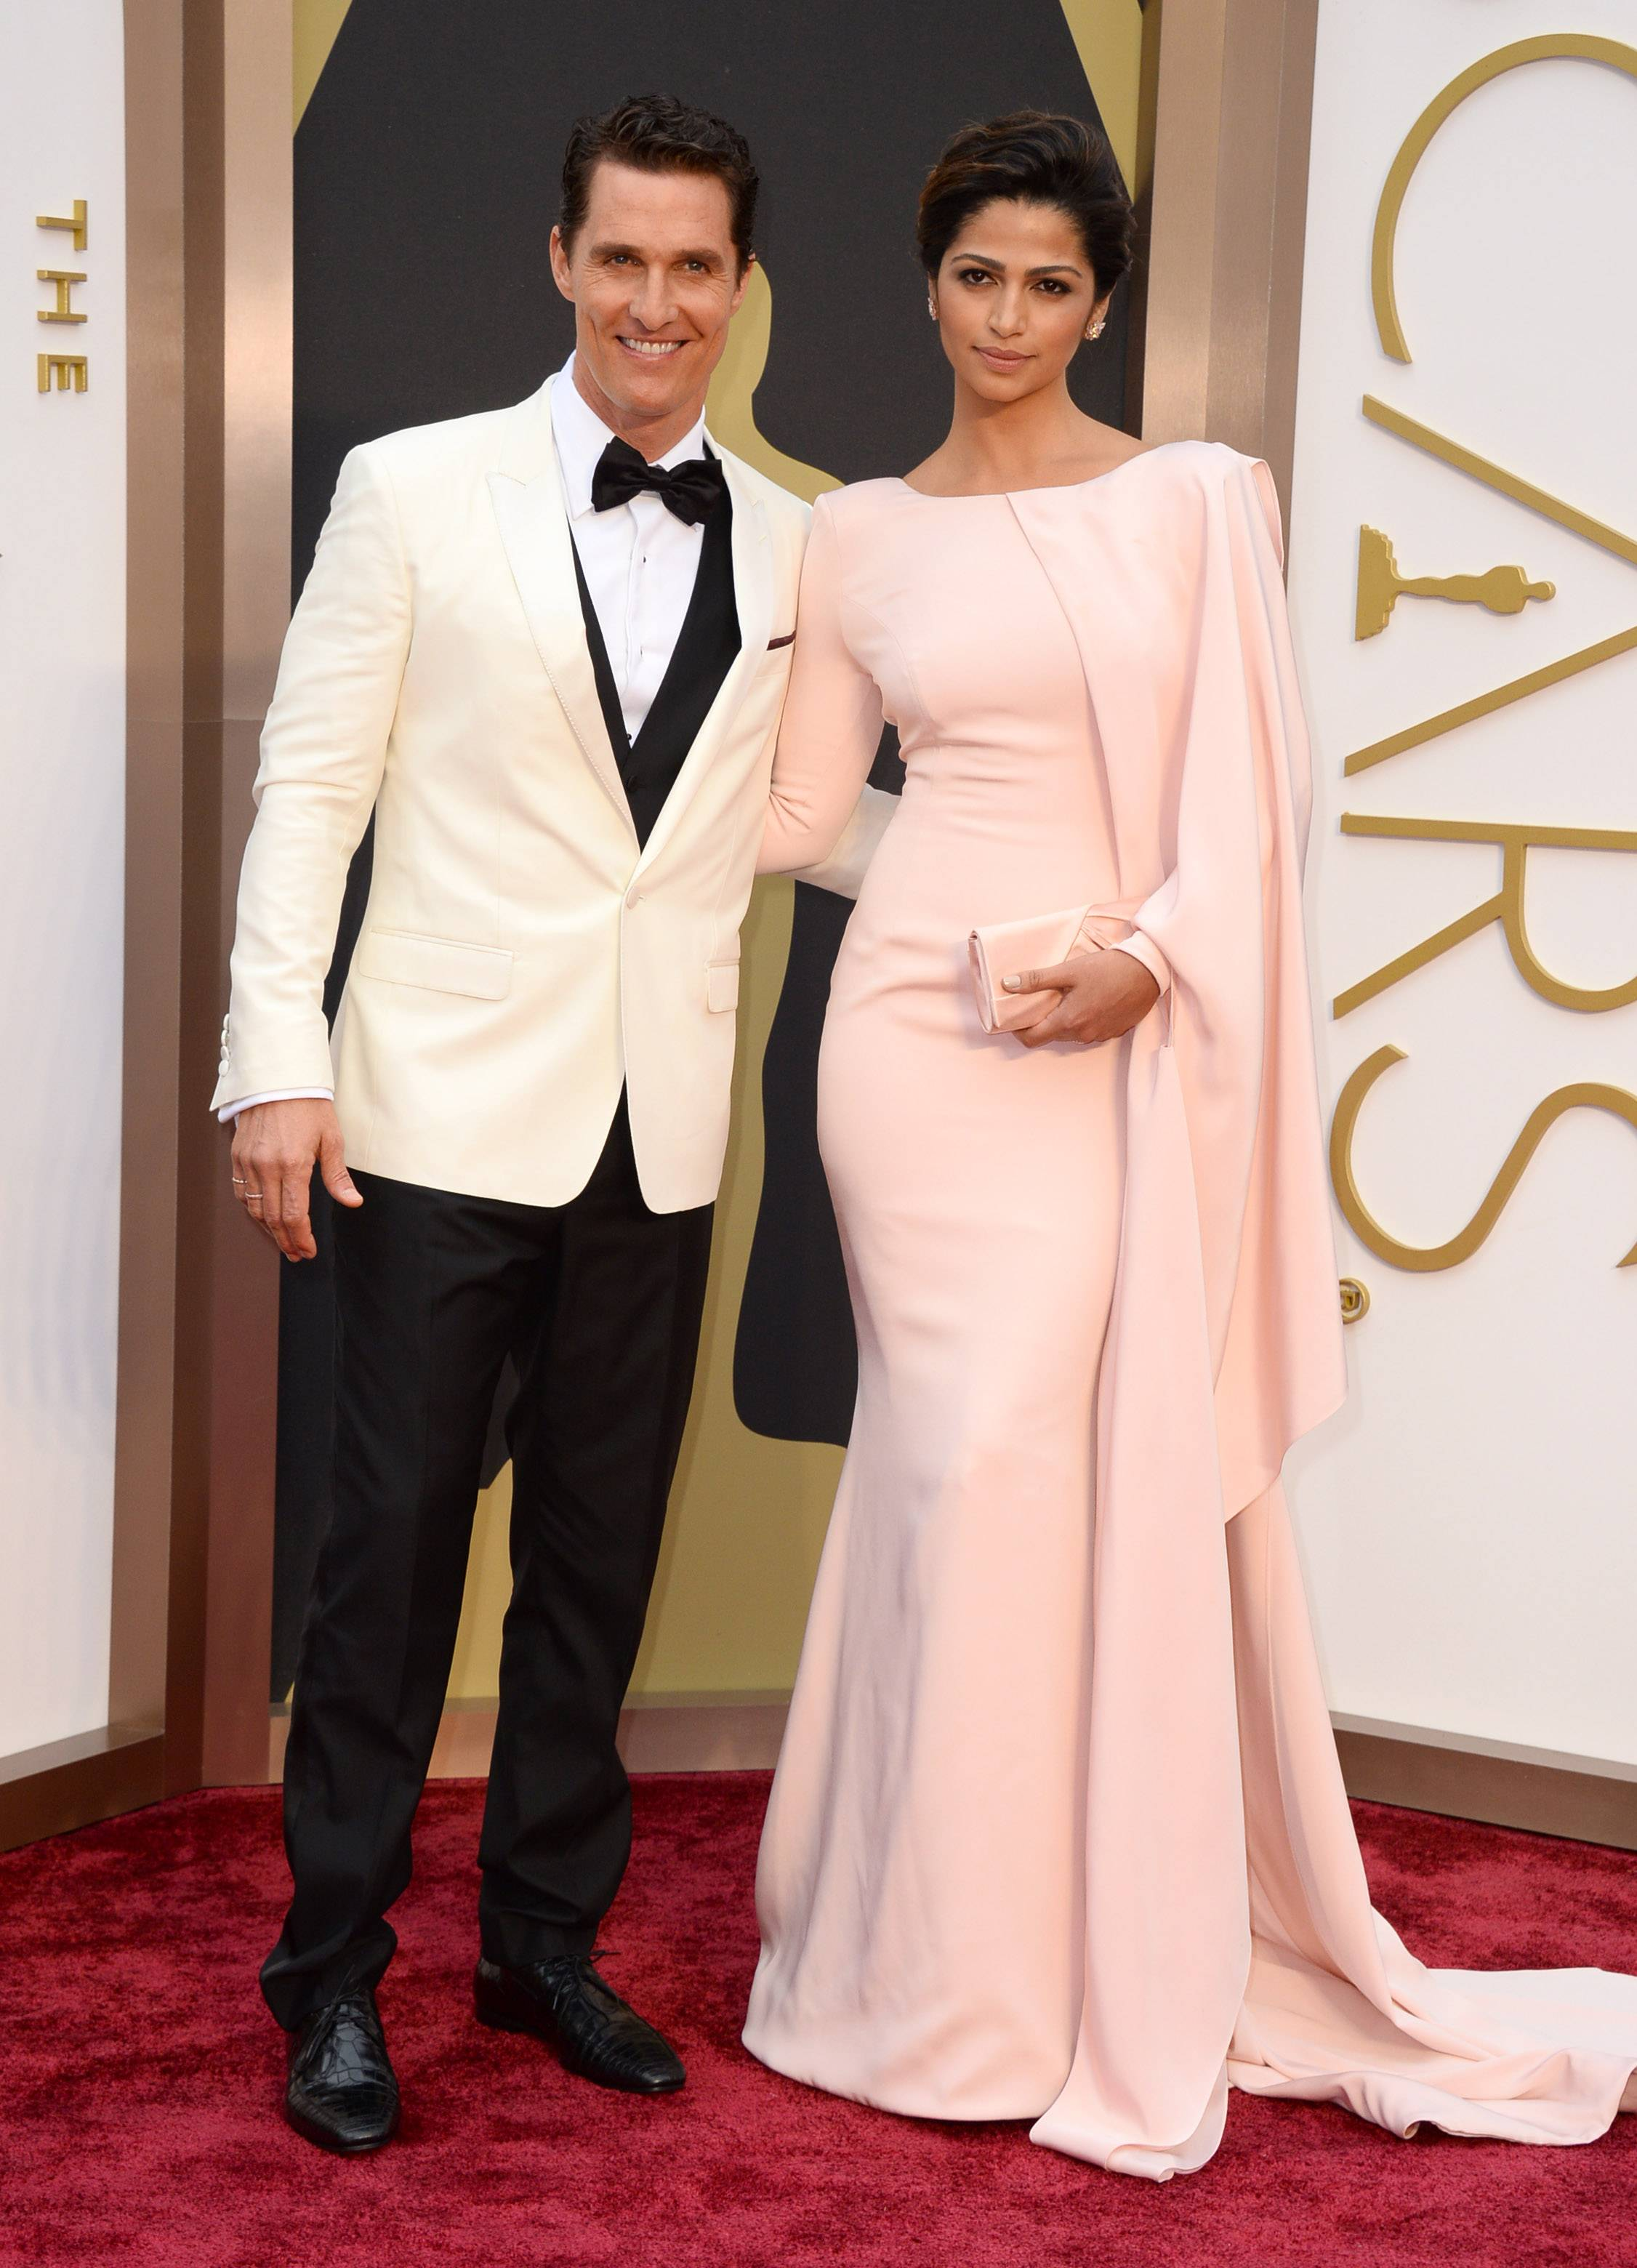 Best actor nominee Matthew McConaughey keeps wife Camila Alves close as they make their way into the Oscars ceremony.